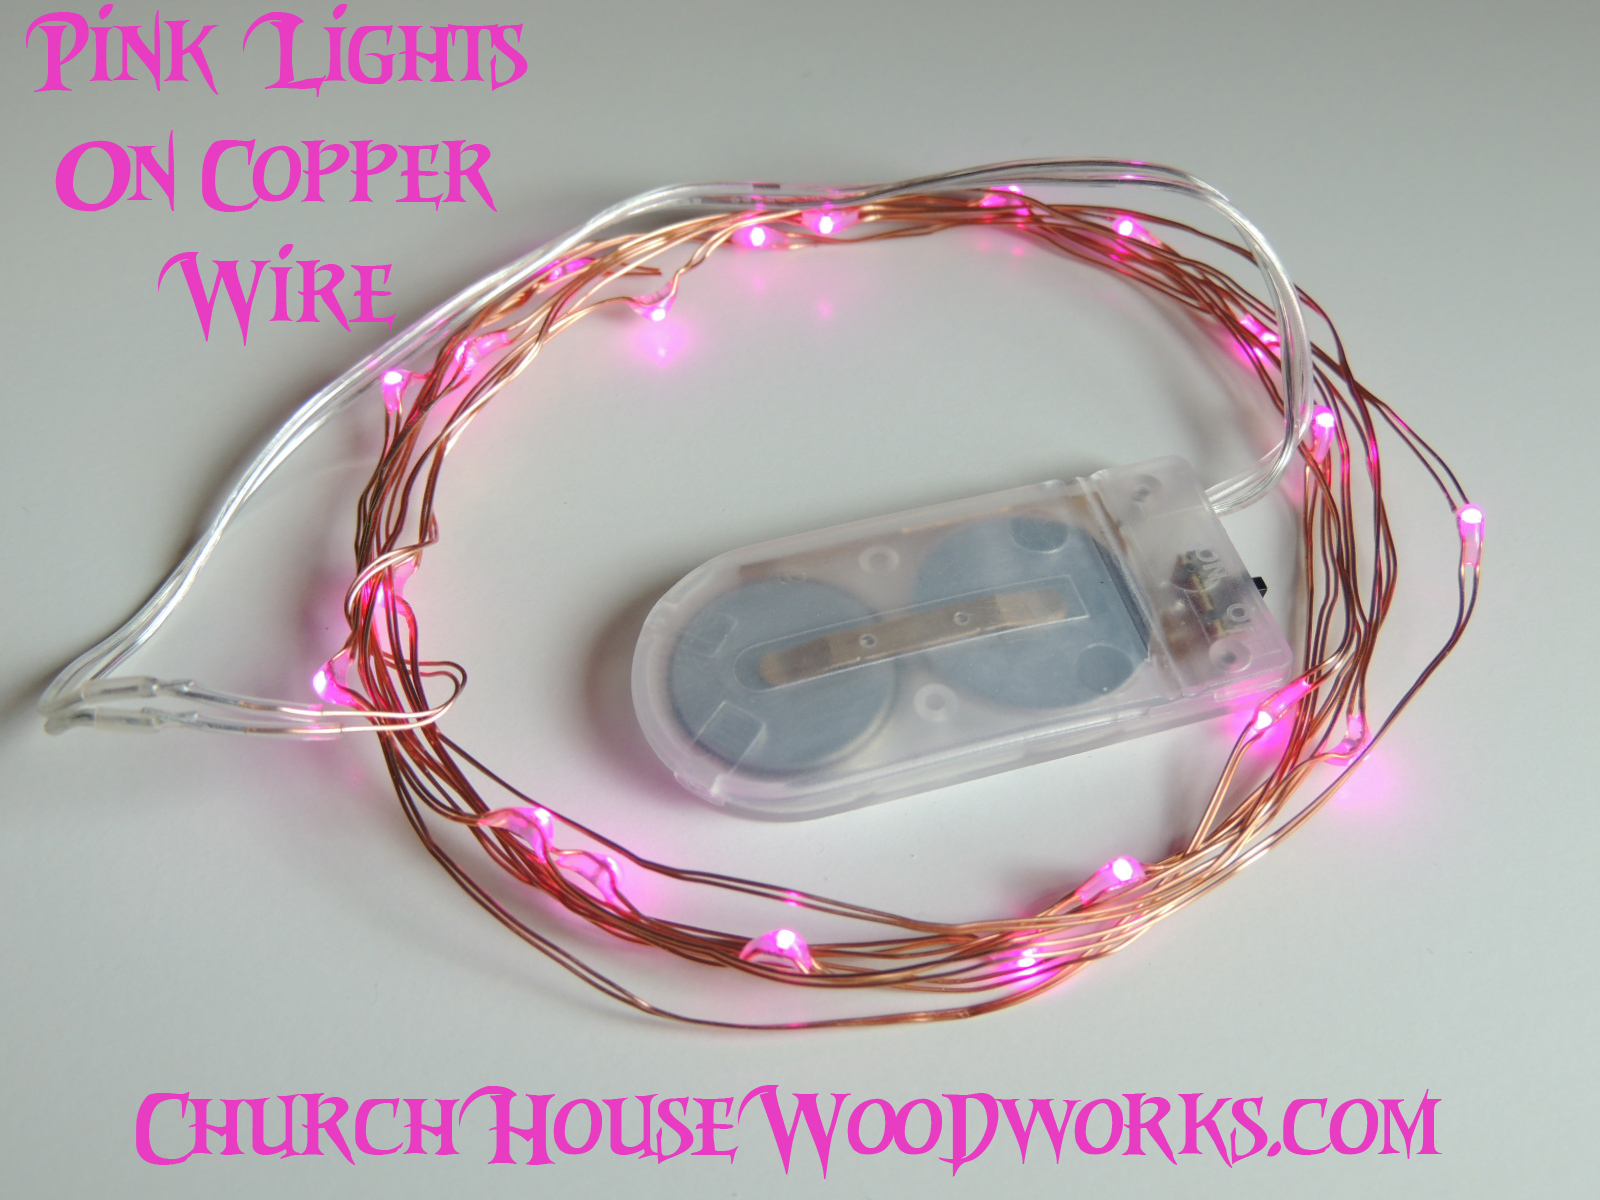 Rustic 4 Weddings: Party Lights-Lighting For Parties Holidays And ...